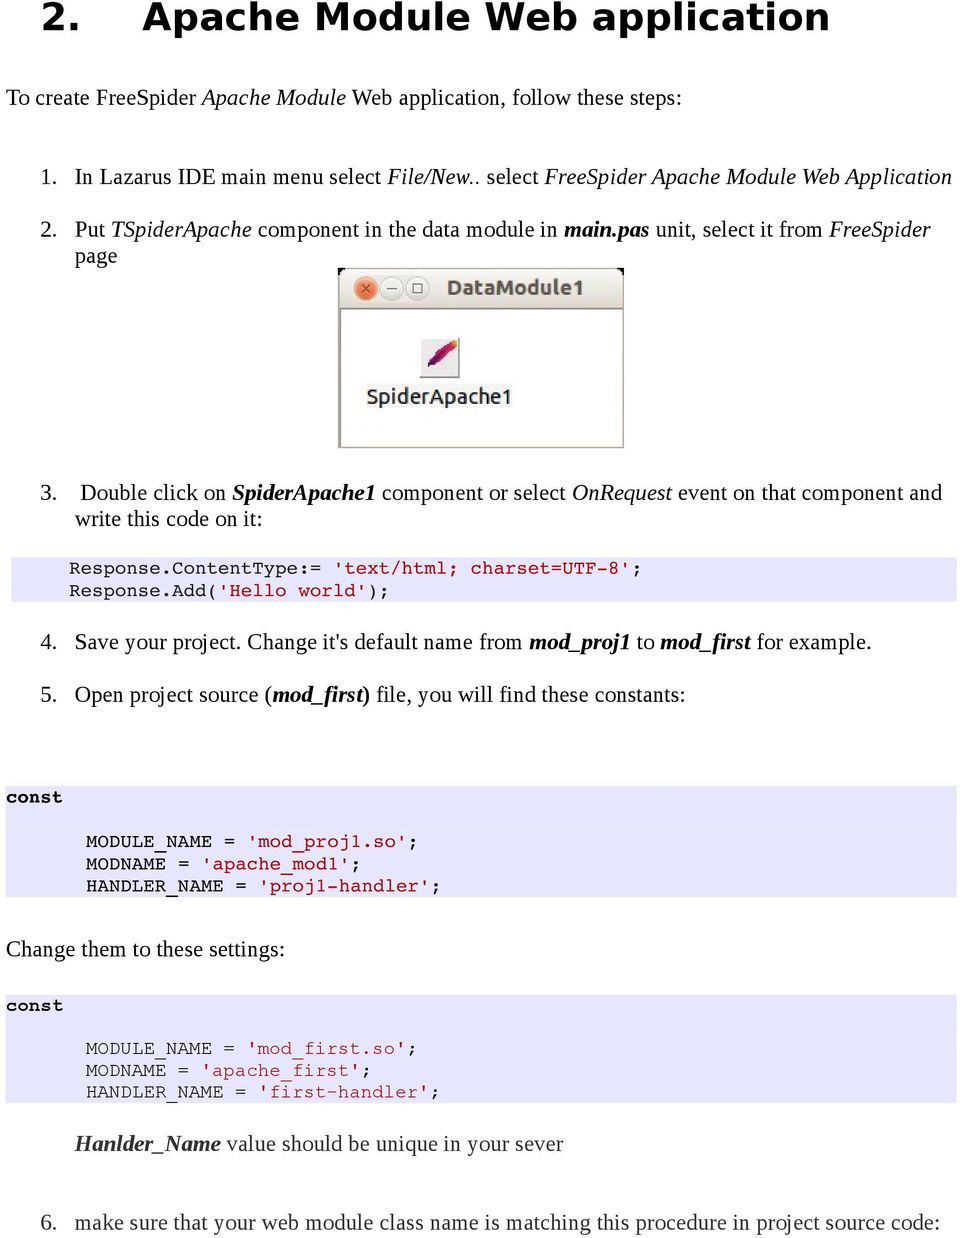 Free Spider Web development for Free Pascal/Lazarus user's